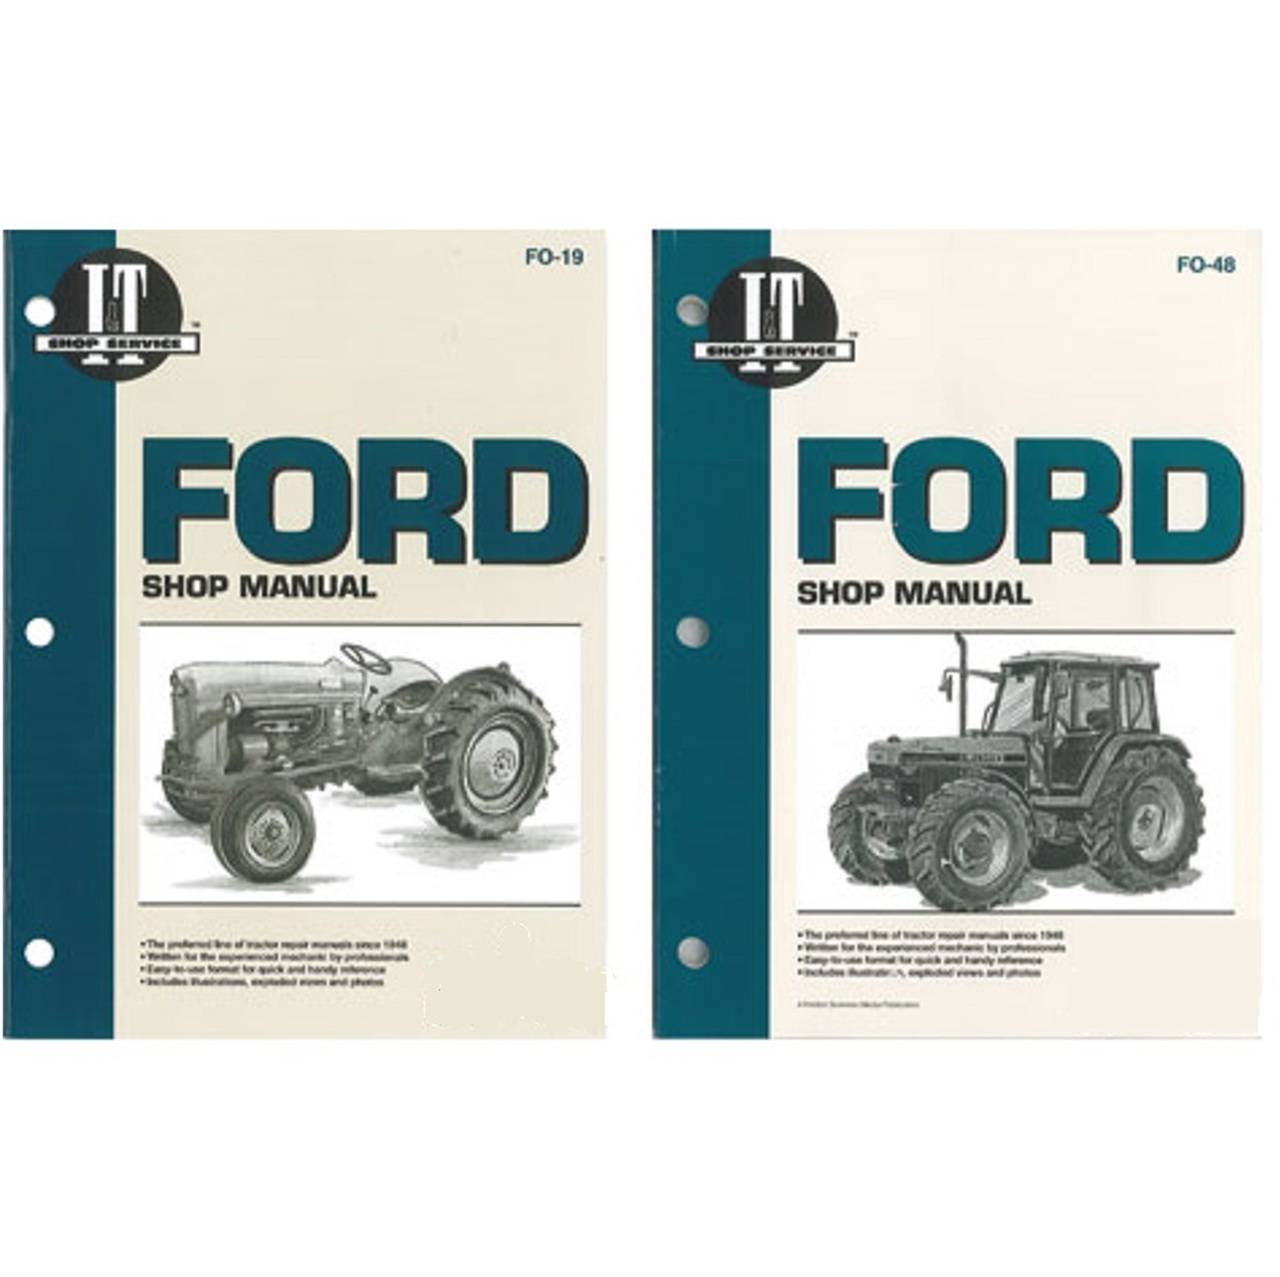 Ford Tractor Parts For 8n 9n Naa 600 800 Dexta 1953 601 Wiring Diagram Repair Manual